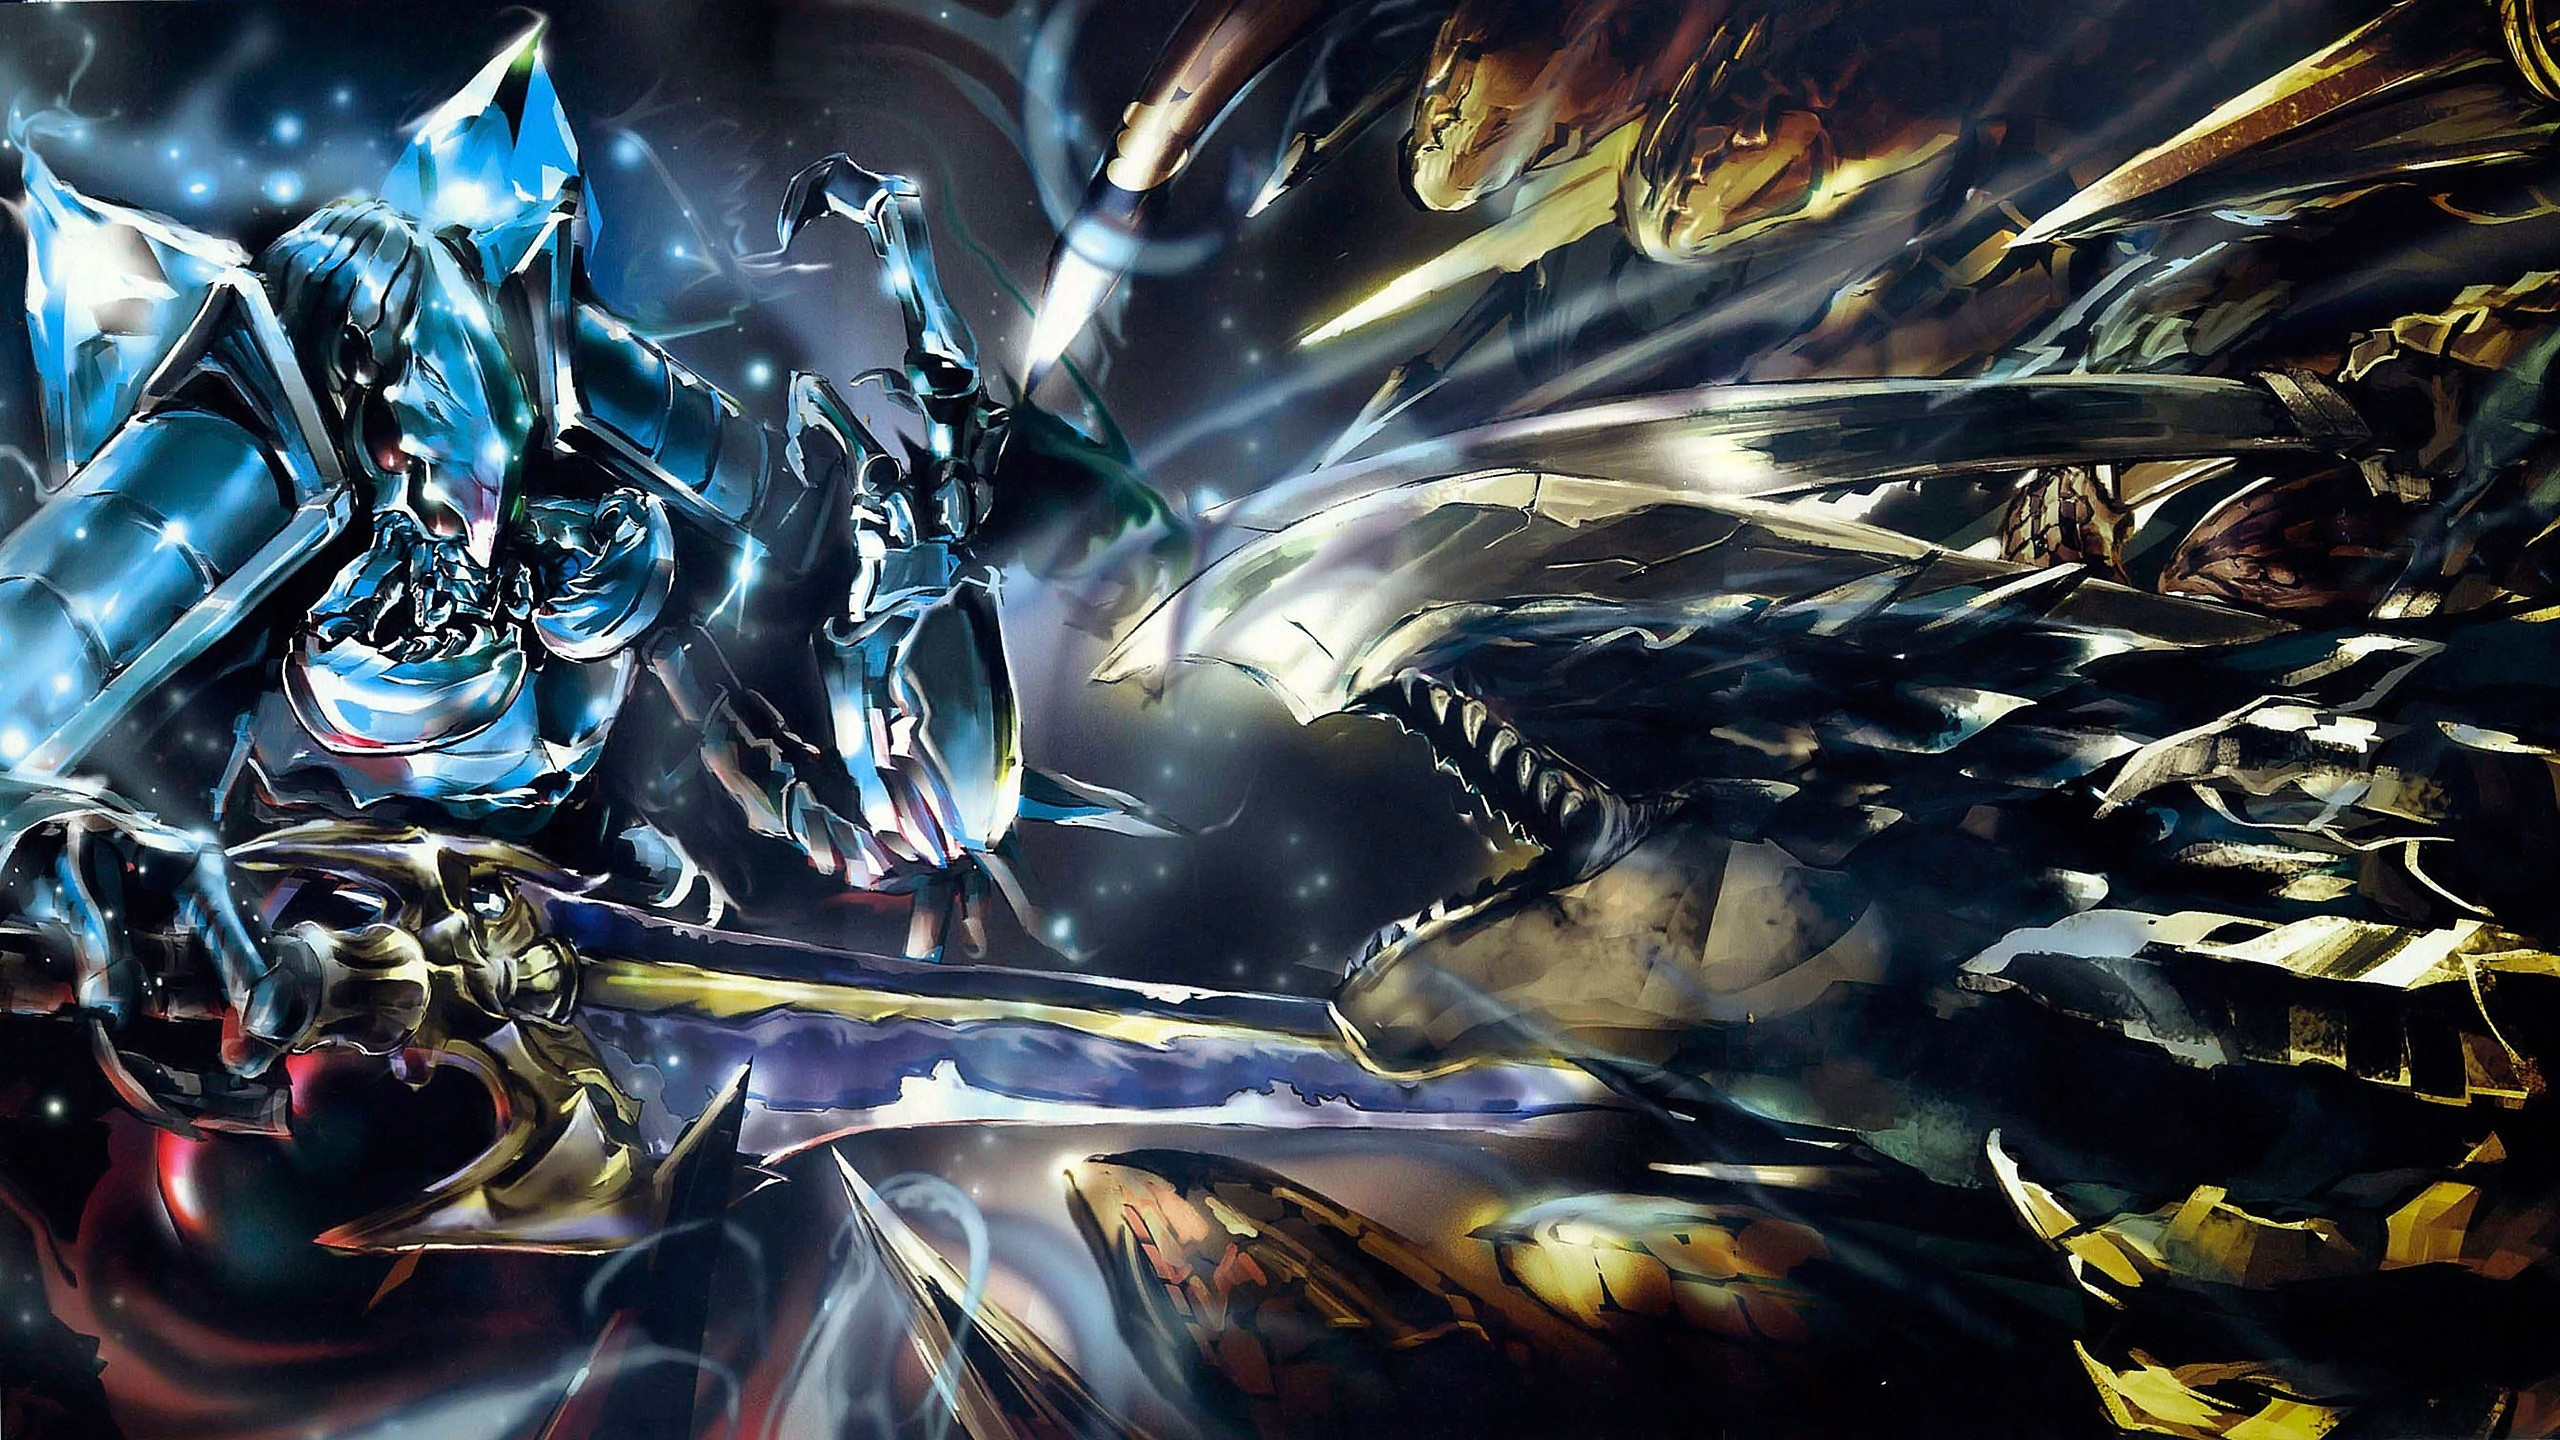 2560x1440 Anime Overlord Ainz Ooal Gown Overlord Wallpaper | Overlord | Pinterest |  Anime, Wallpaper and Manga